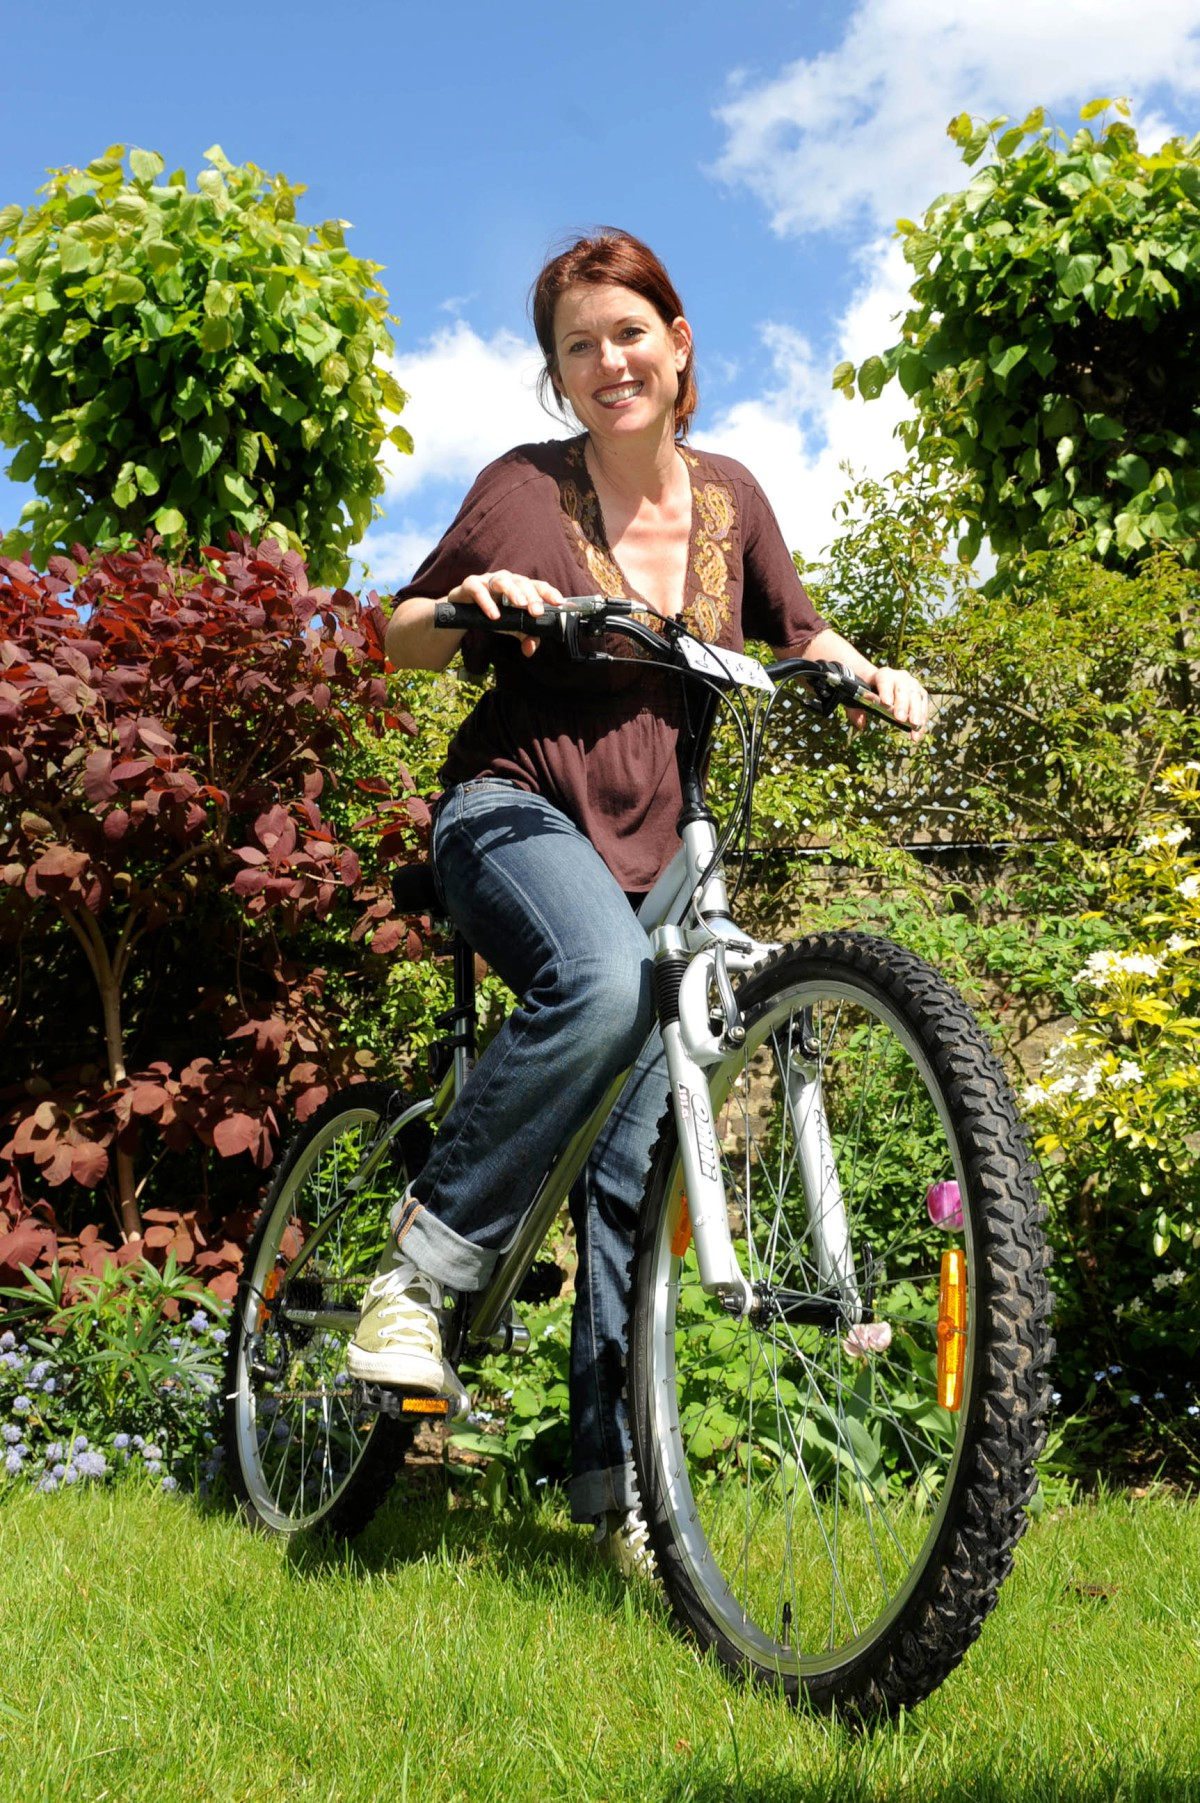 On two wheels: Gina Conway gets ready to take on the charity bike ride